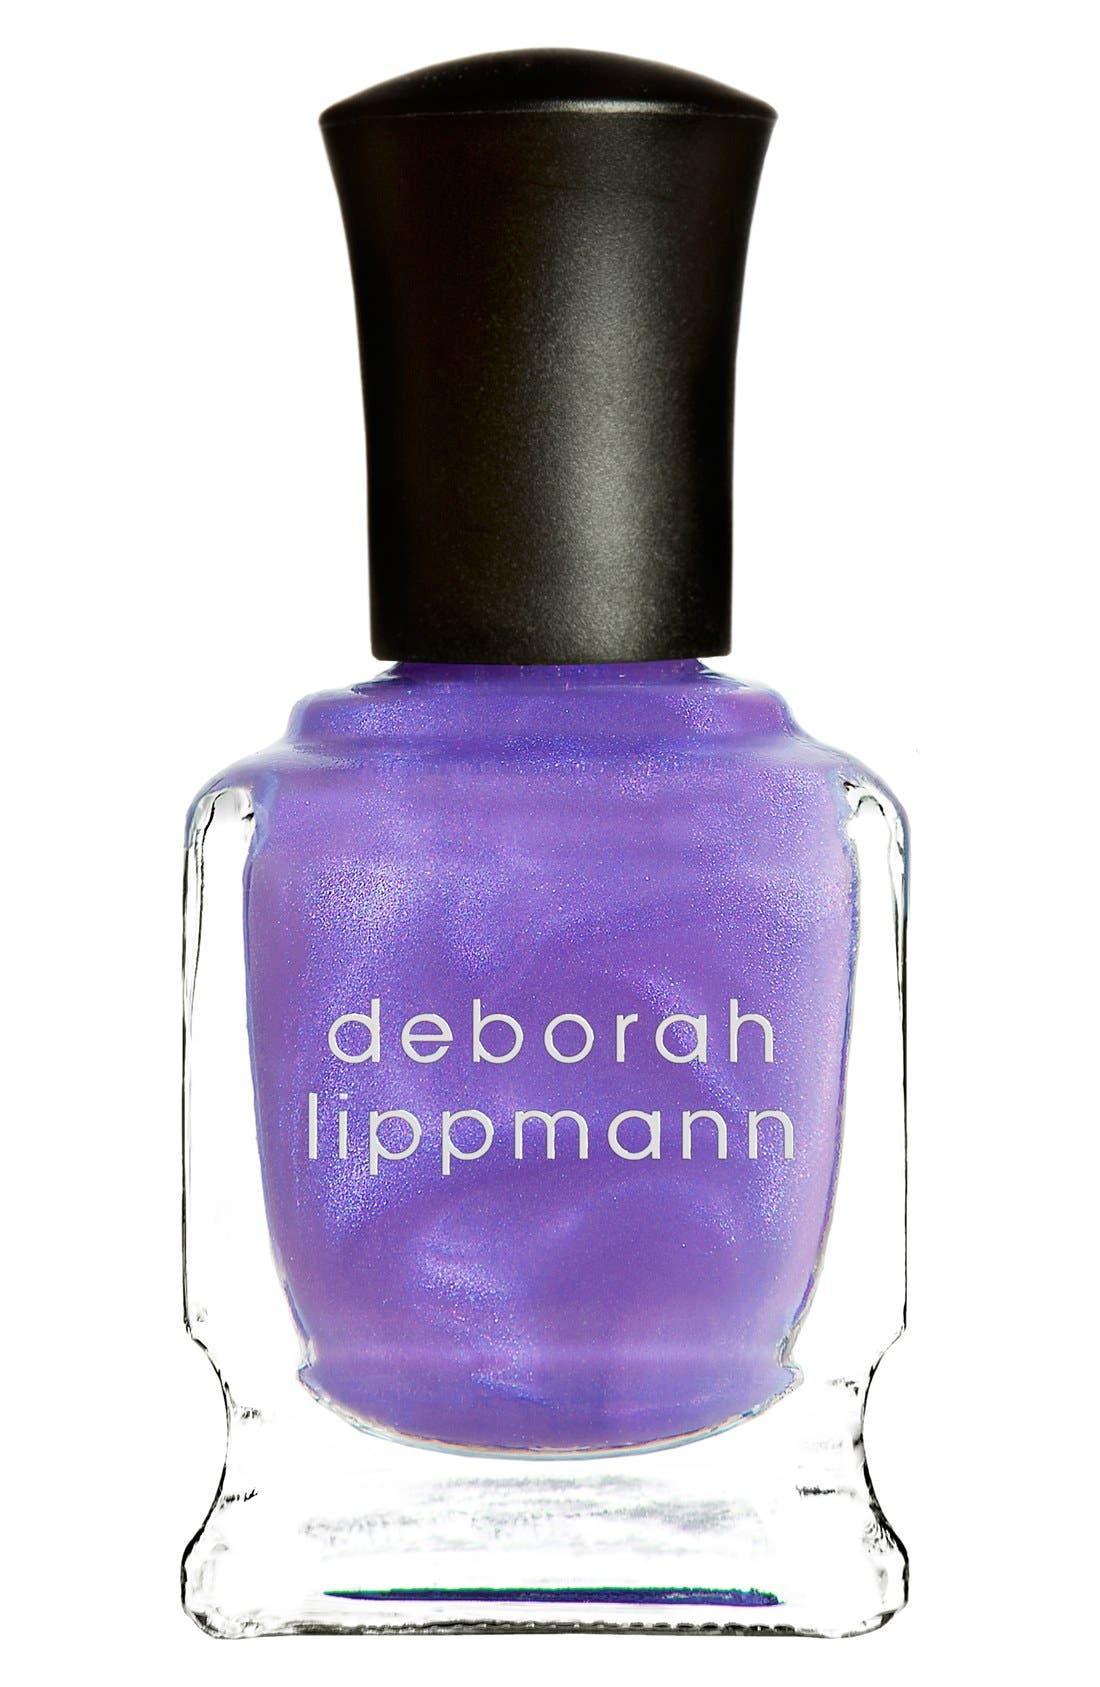 Deborah Lippmann 'Genie in a Bottle' Illuminating Nail Tone Perfector Base Coat